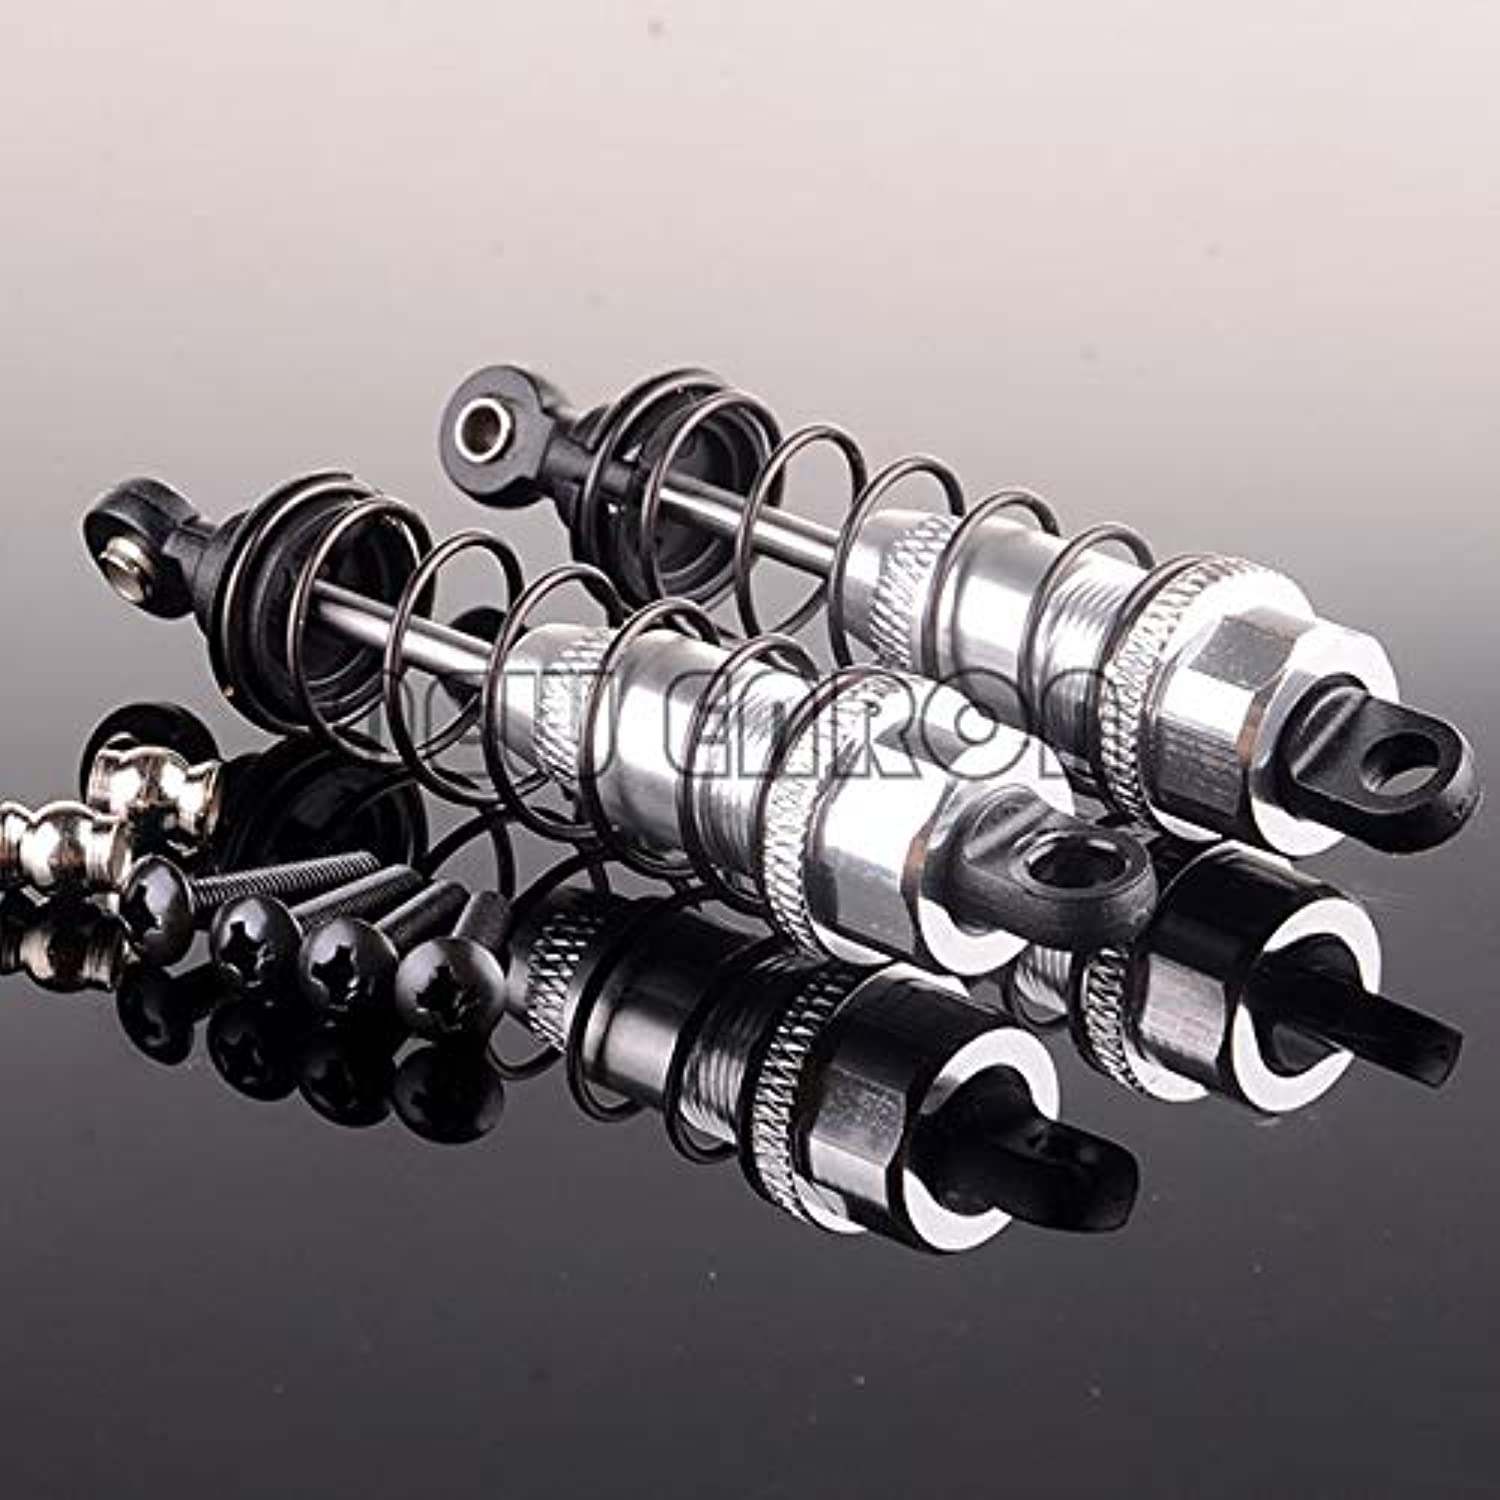 New Enron 2P 1 10 Aluminum Oil Adjustable Shocks RC 85MM for HPI HSP Tamiya CC01 Shock Absorber   Silver